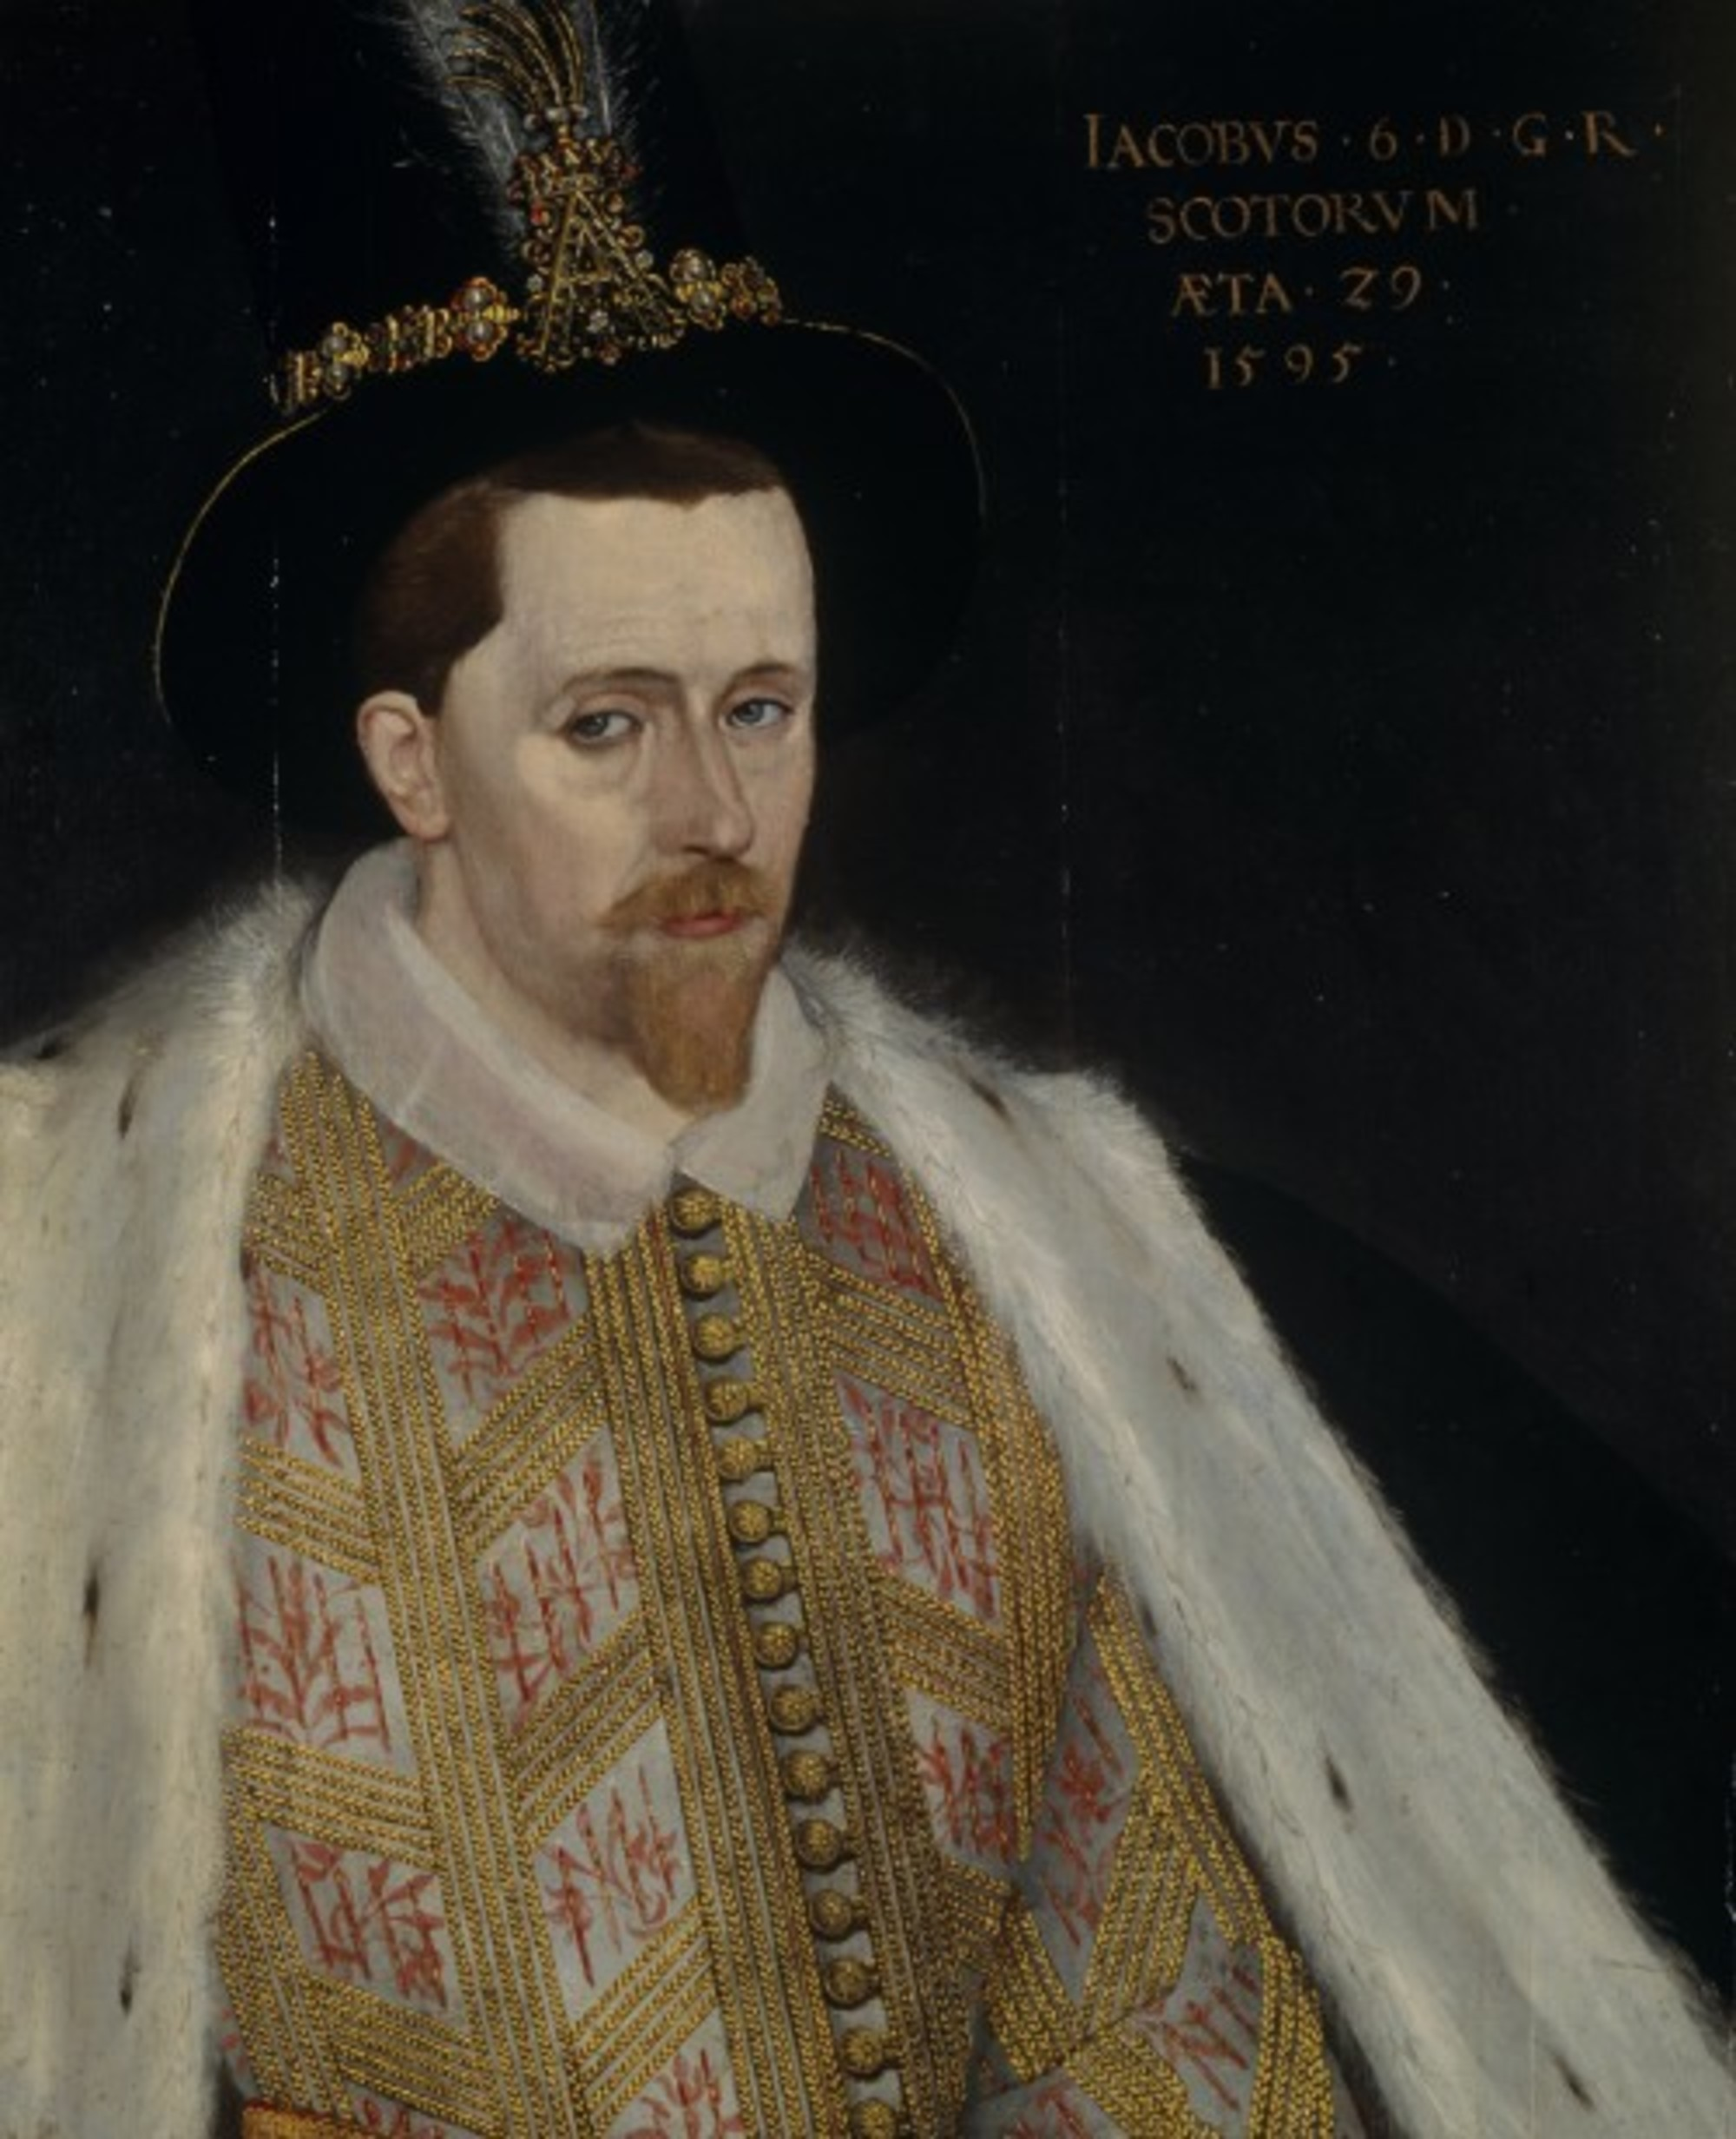 Attributed-to-Adrian-Vanson---James-VI-and-I-1566---1625.-King-of-Scotland-1567---1625.-King-of-England-and-Ireland-1603---1625---Google-Art-Project.jpg